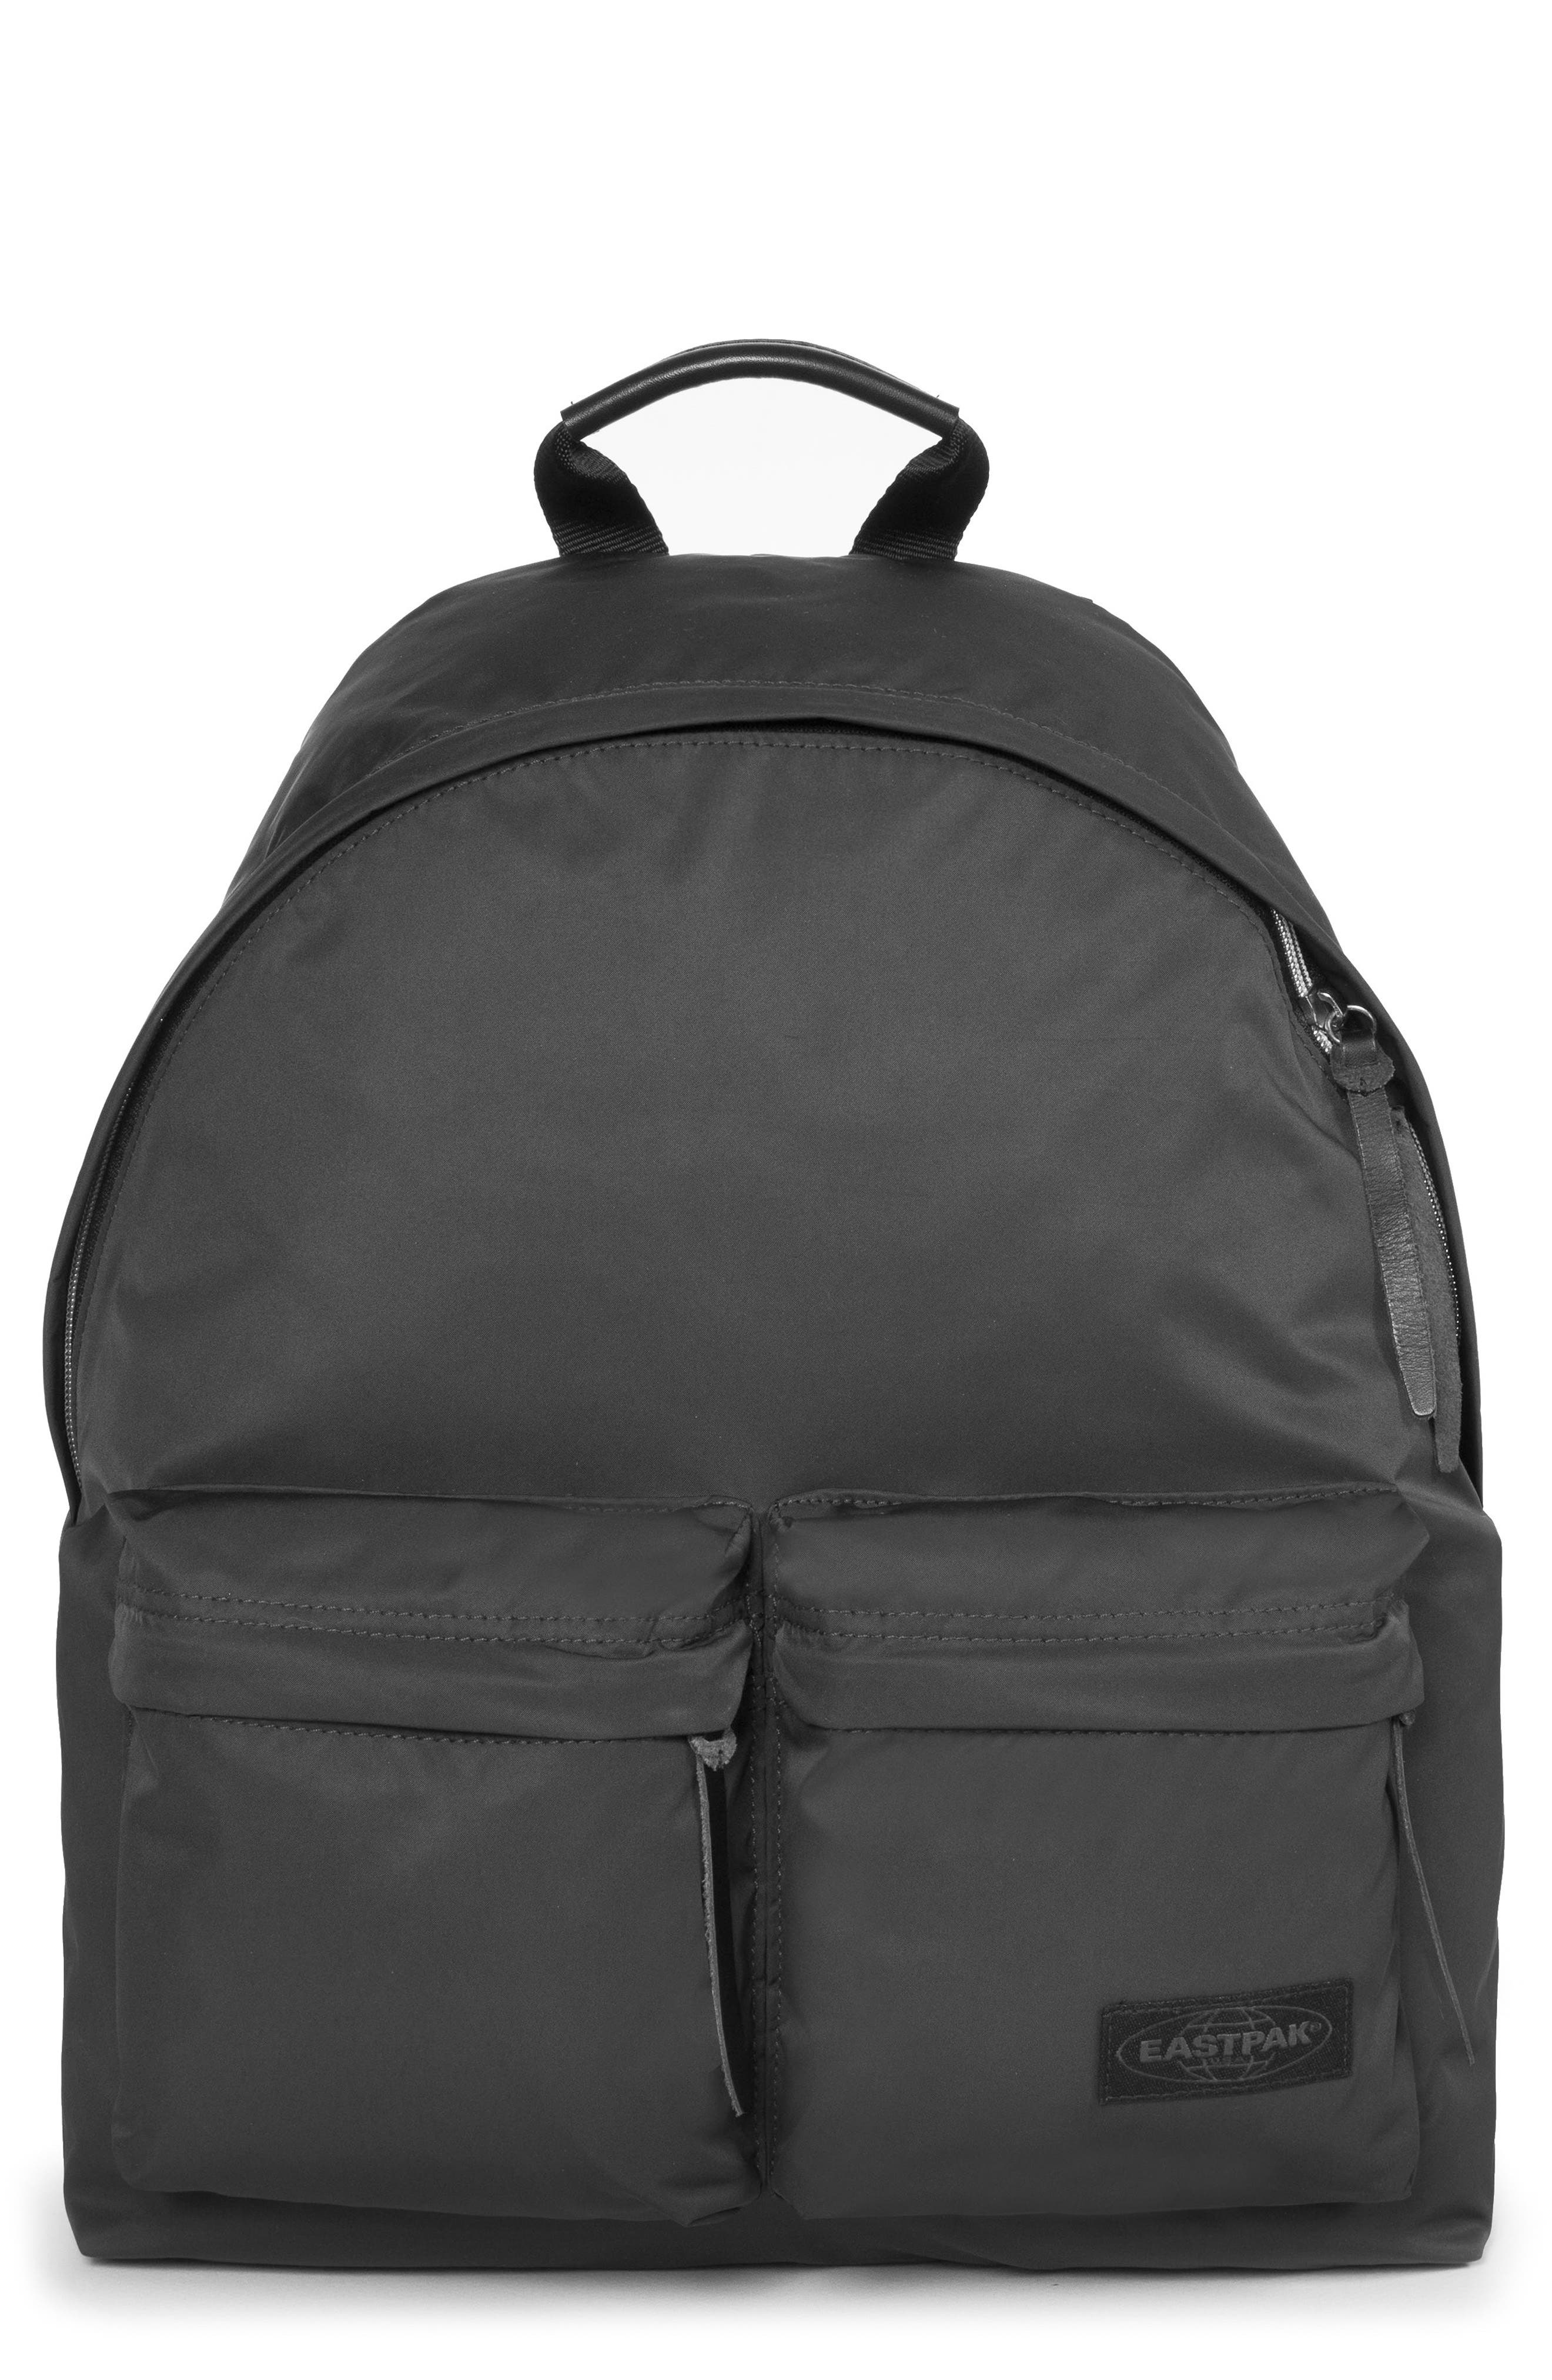 EASTPAK Padded Doubl'r<sup>®</sup> Nylon Backpack, Main, color, 001